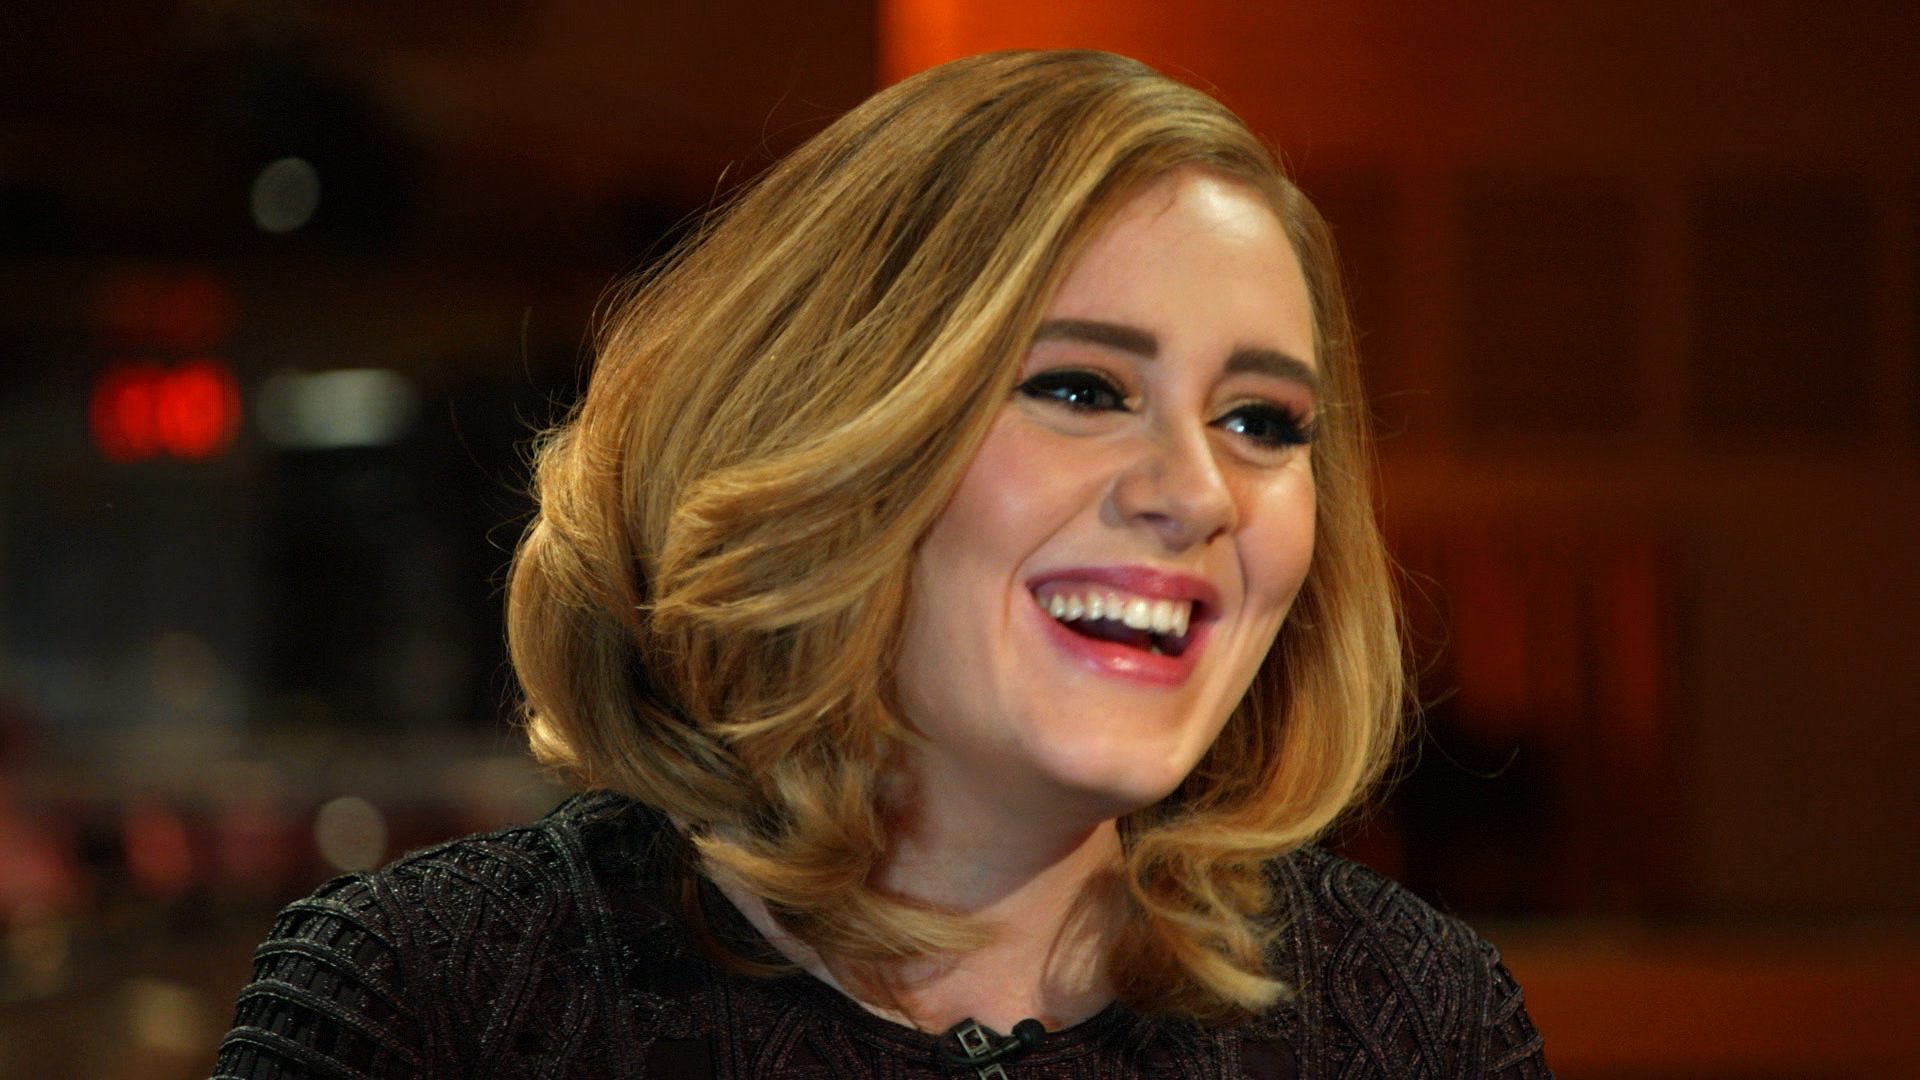 Adele Talks Motherhood, Tattoos And More On TODAY Show: 'I